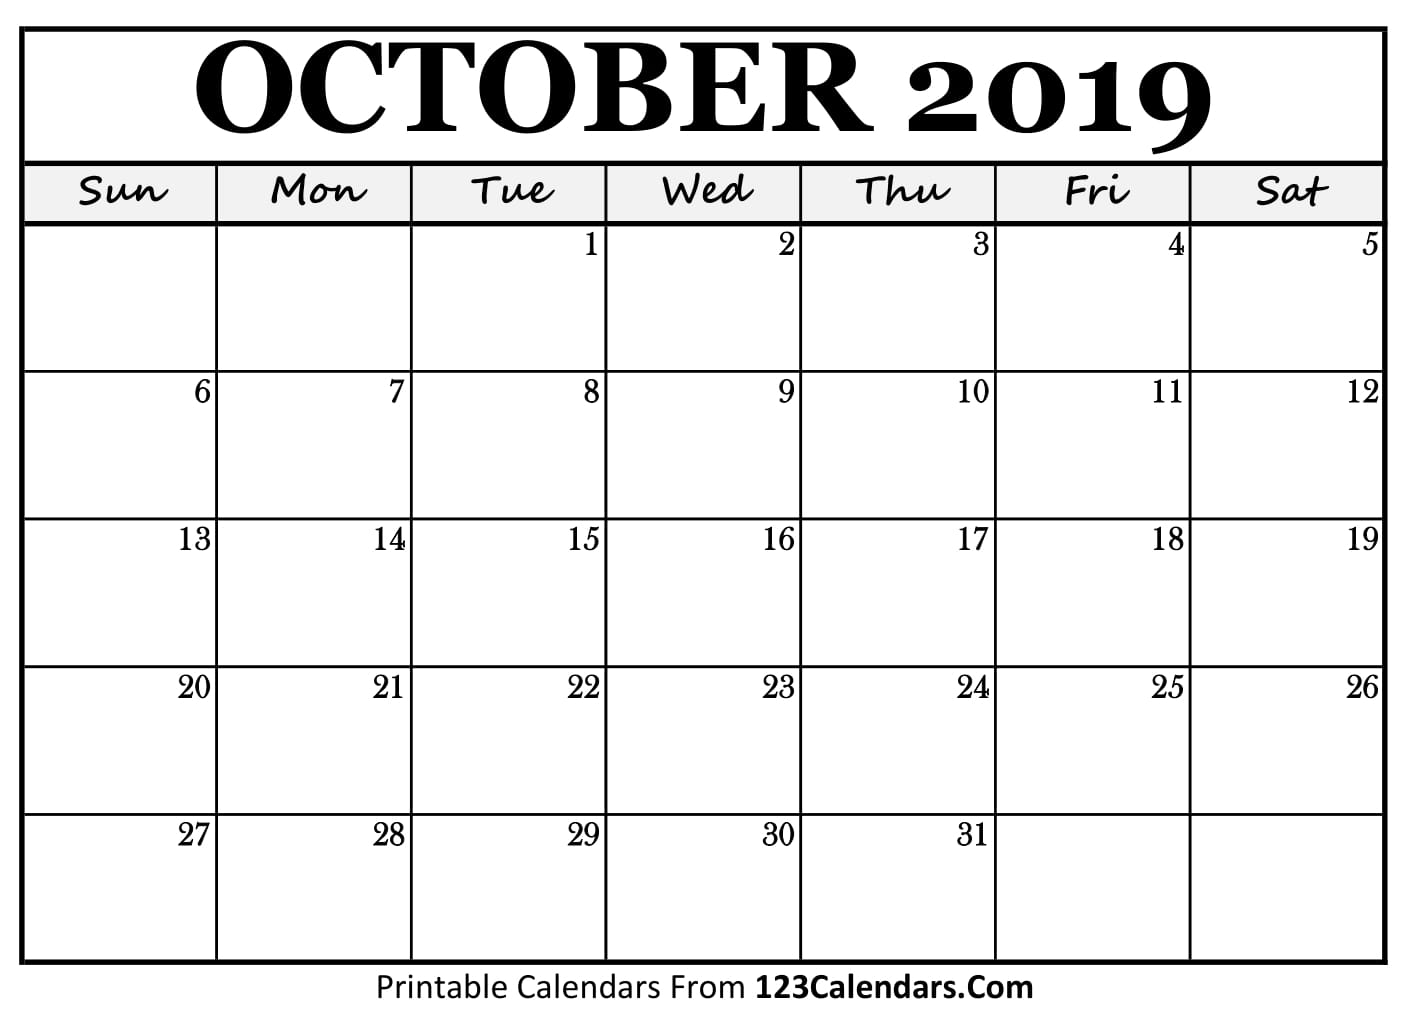 picture regarding Printable Calendar October named Oct 2019 Printable Calendar